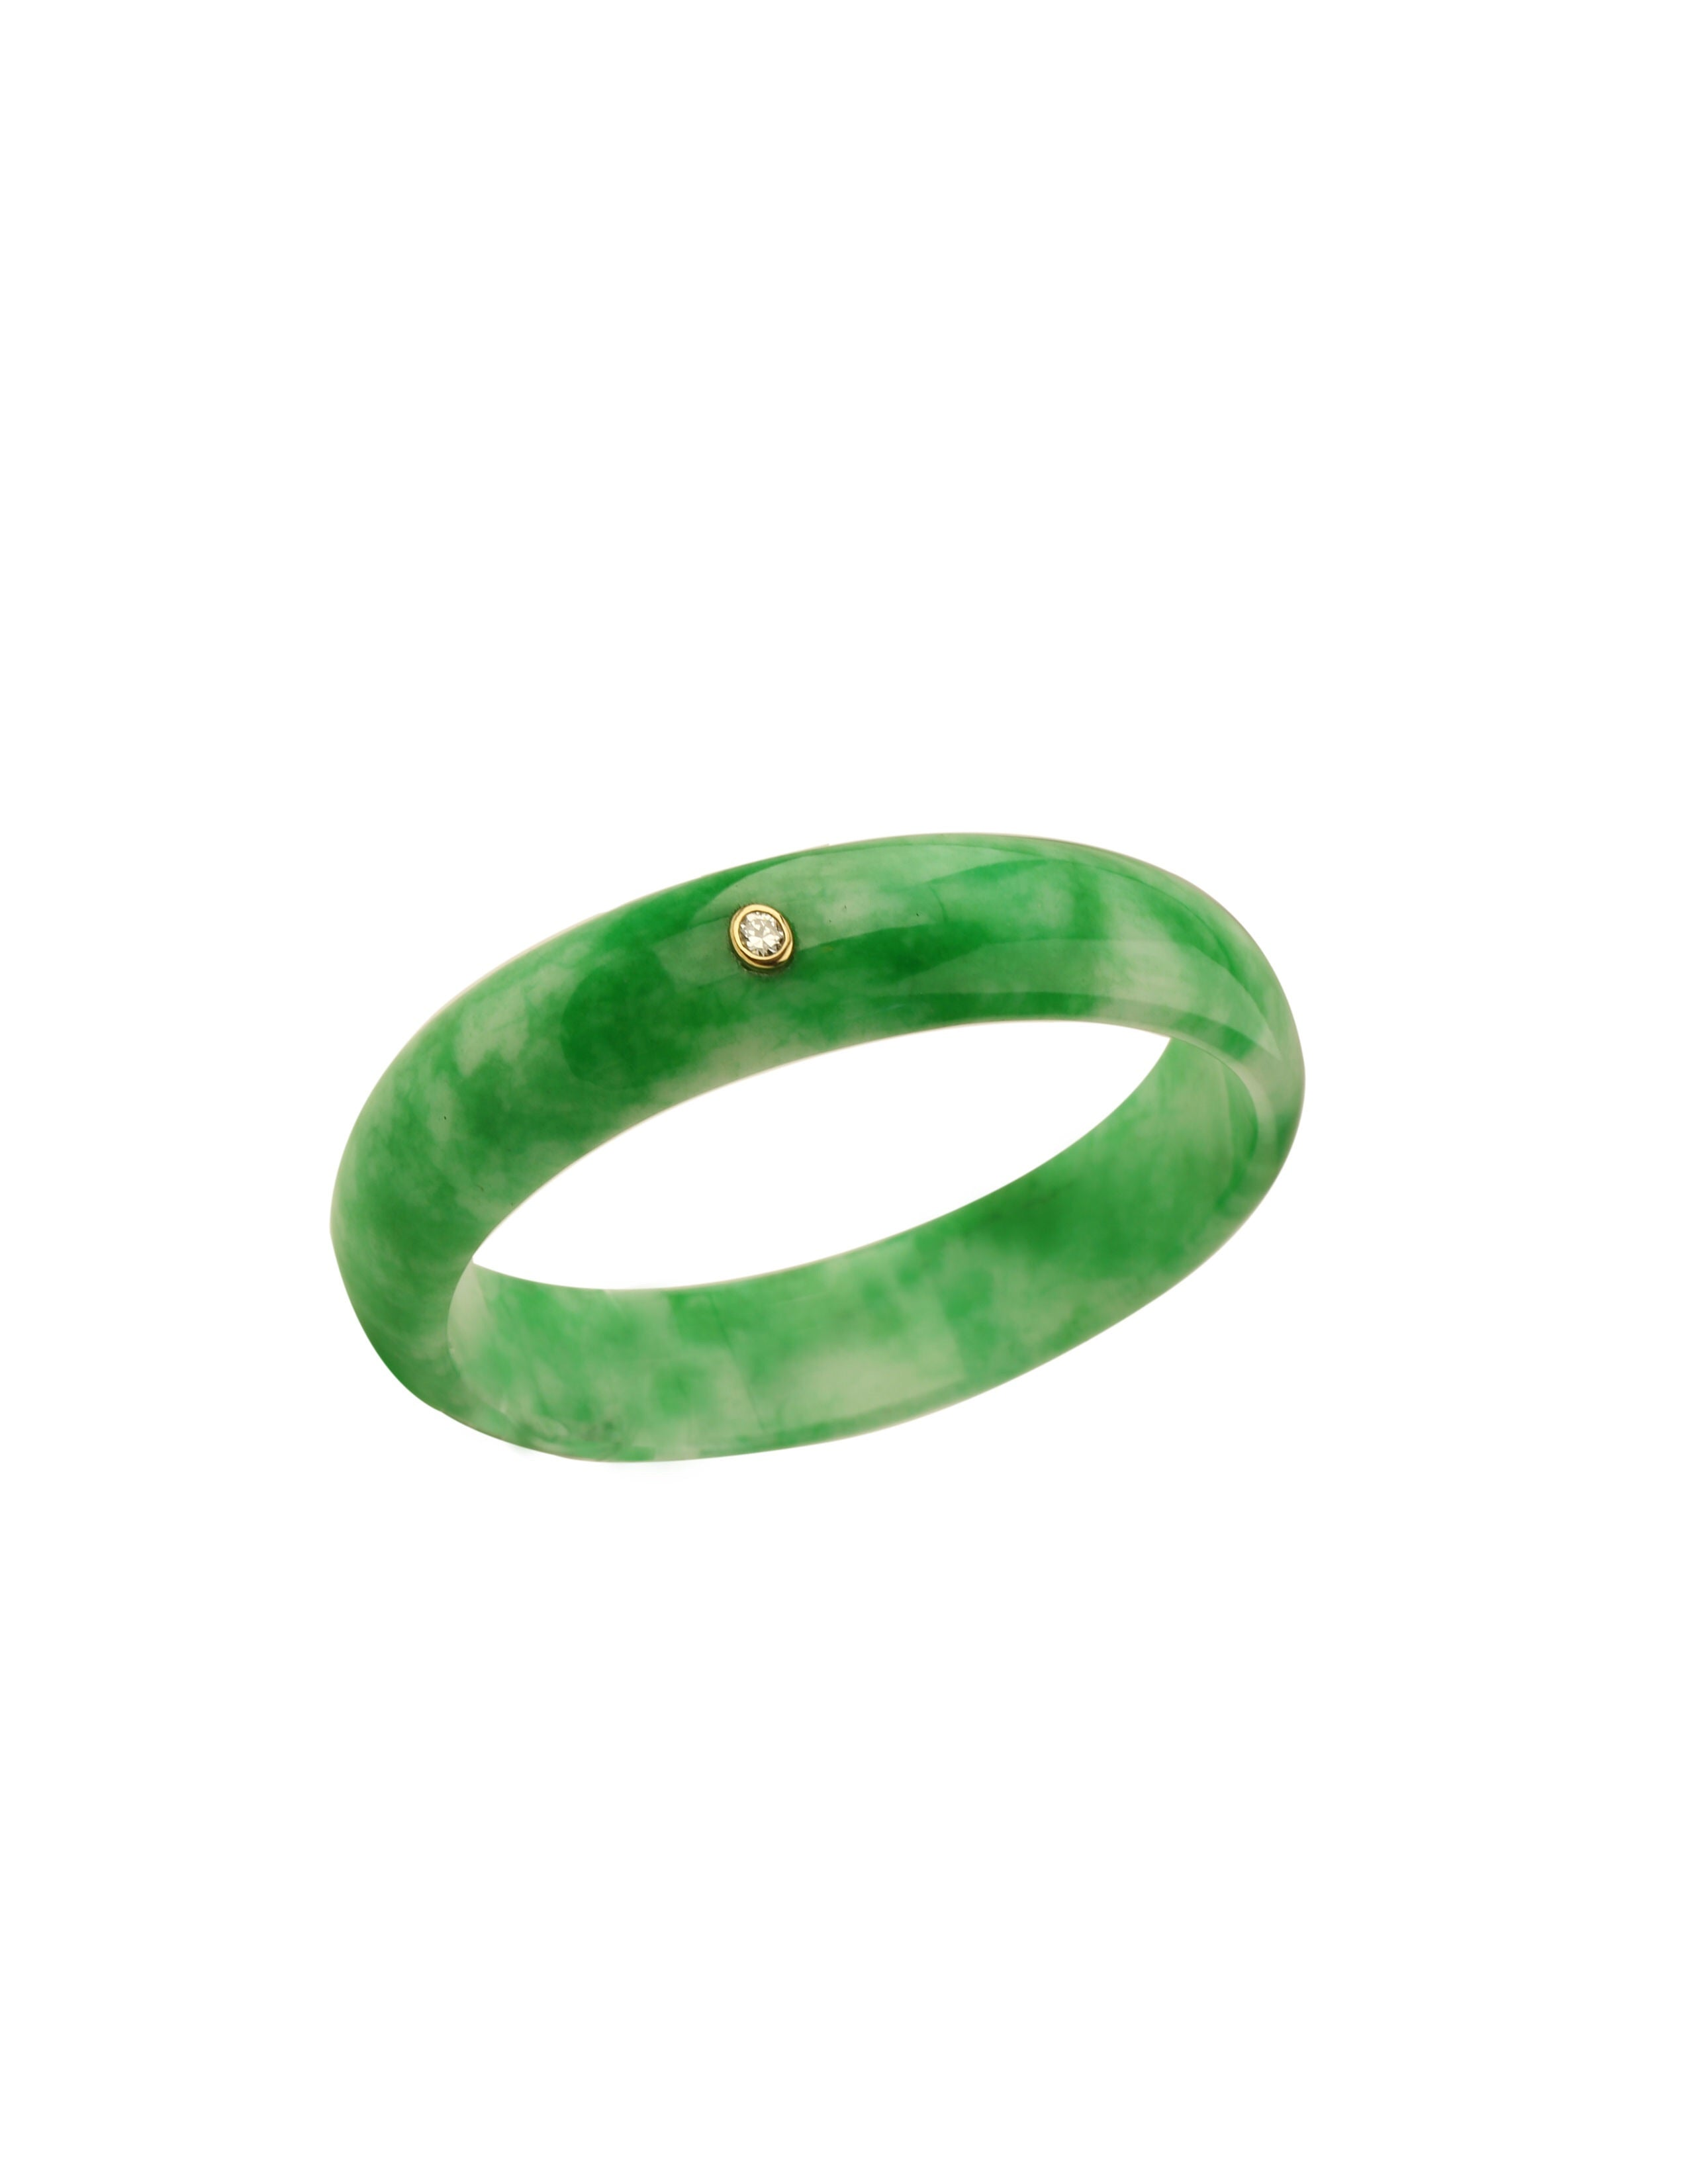 Jade Bracelet with Diamond